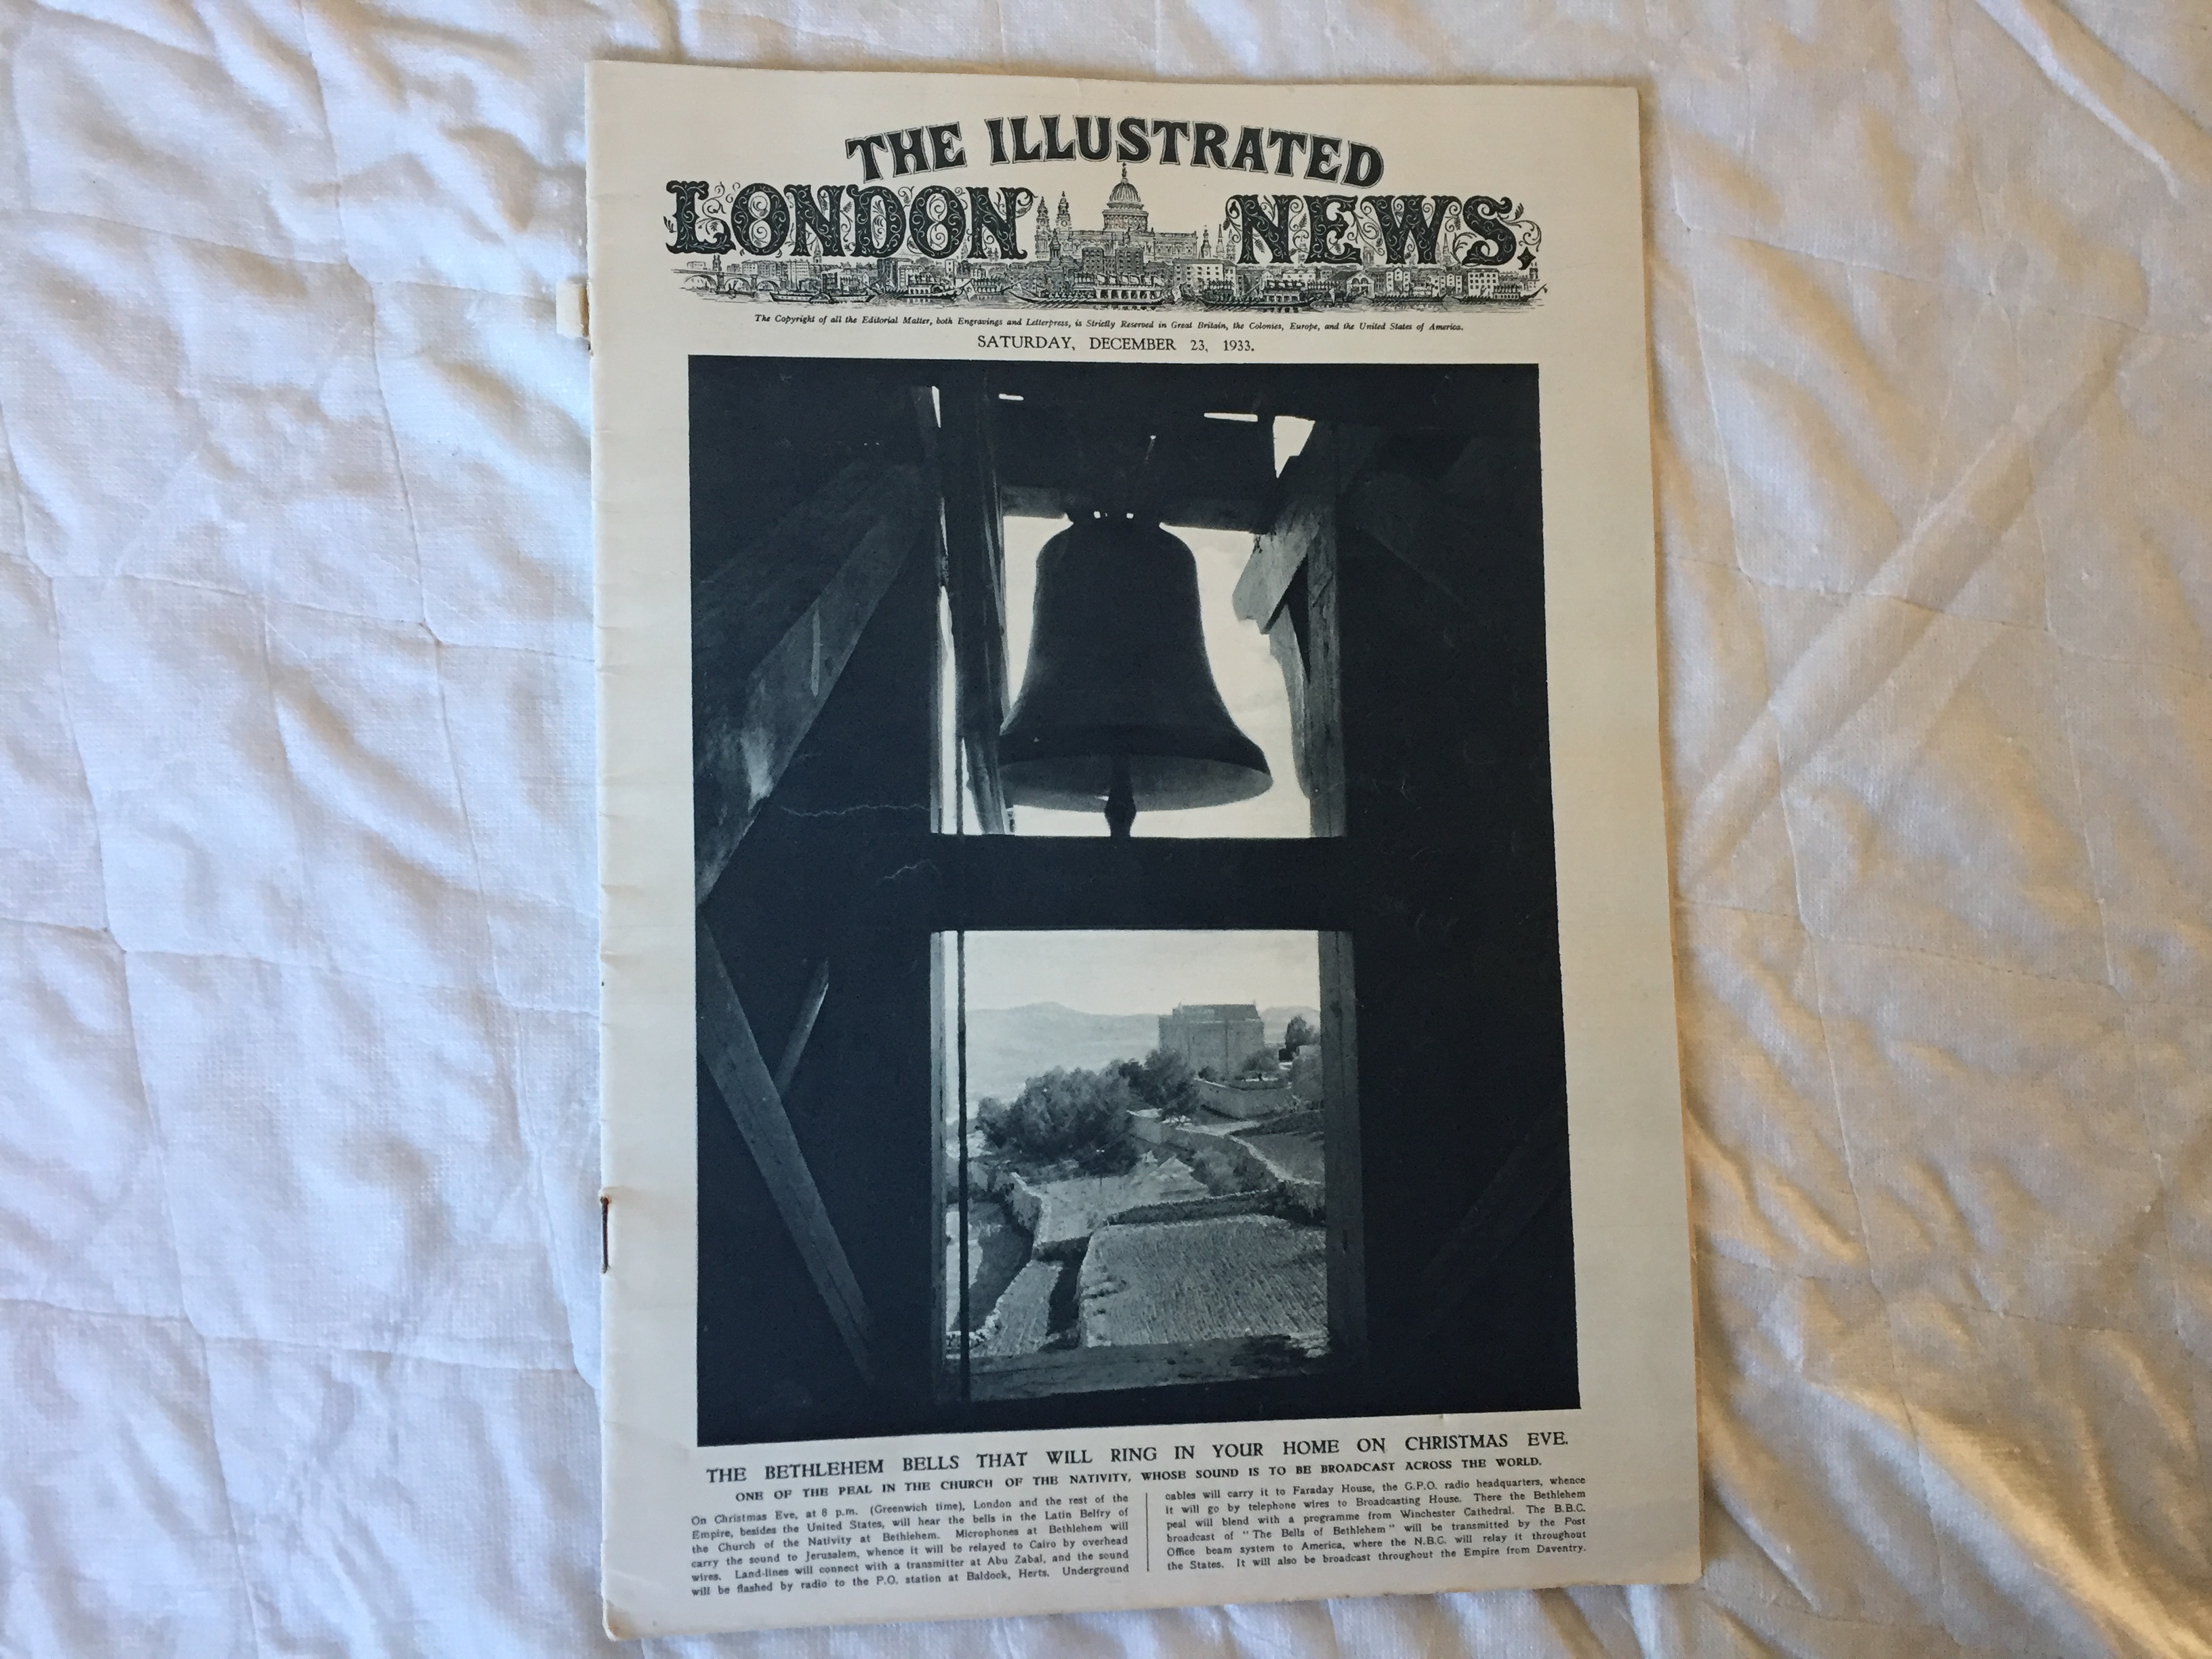 1933 EDITION OF THE ILLUSTRATED LONDON NEWS